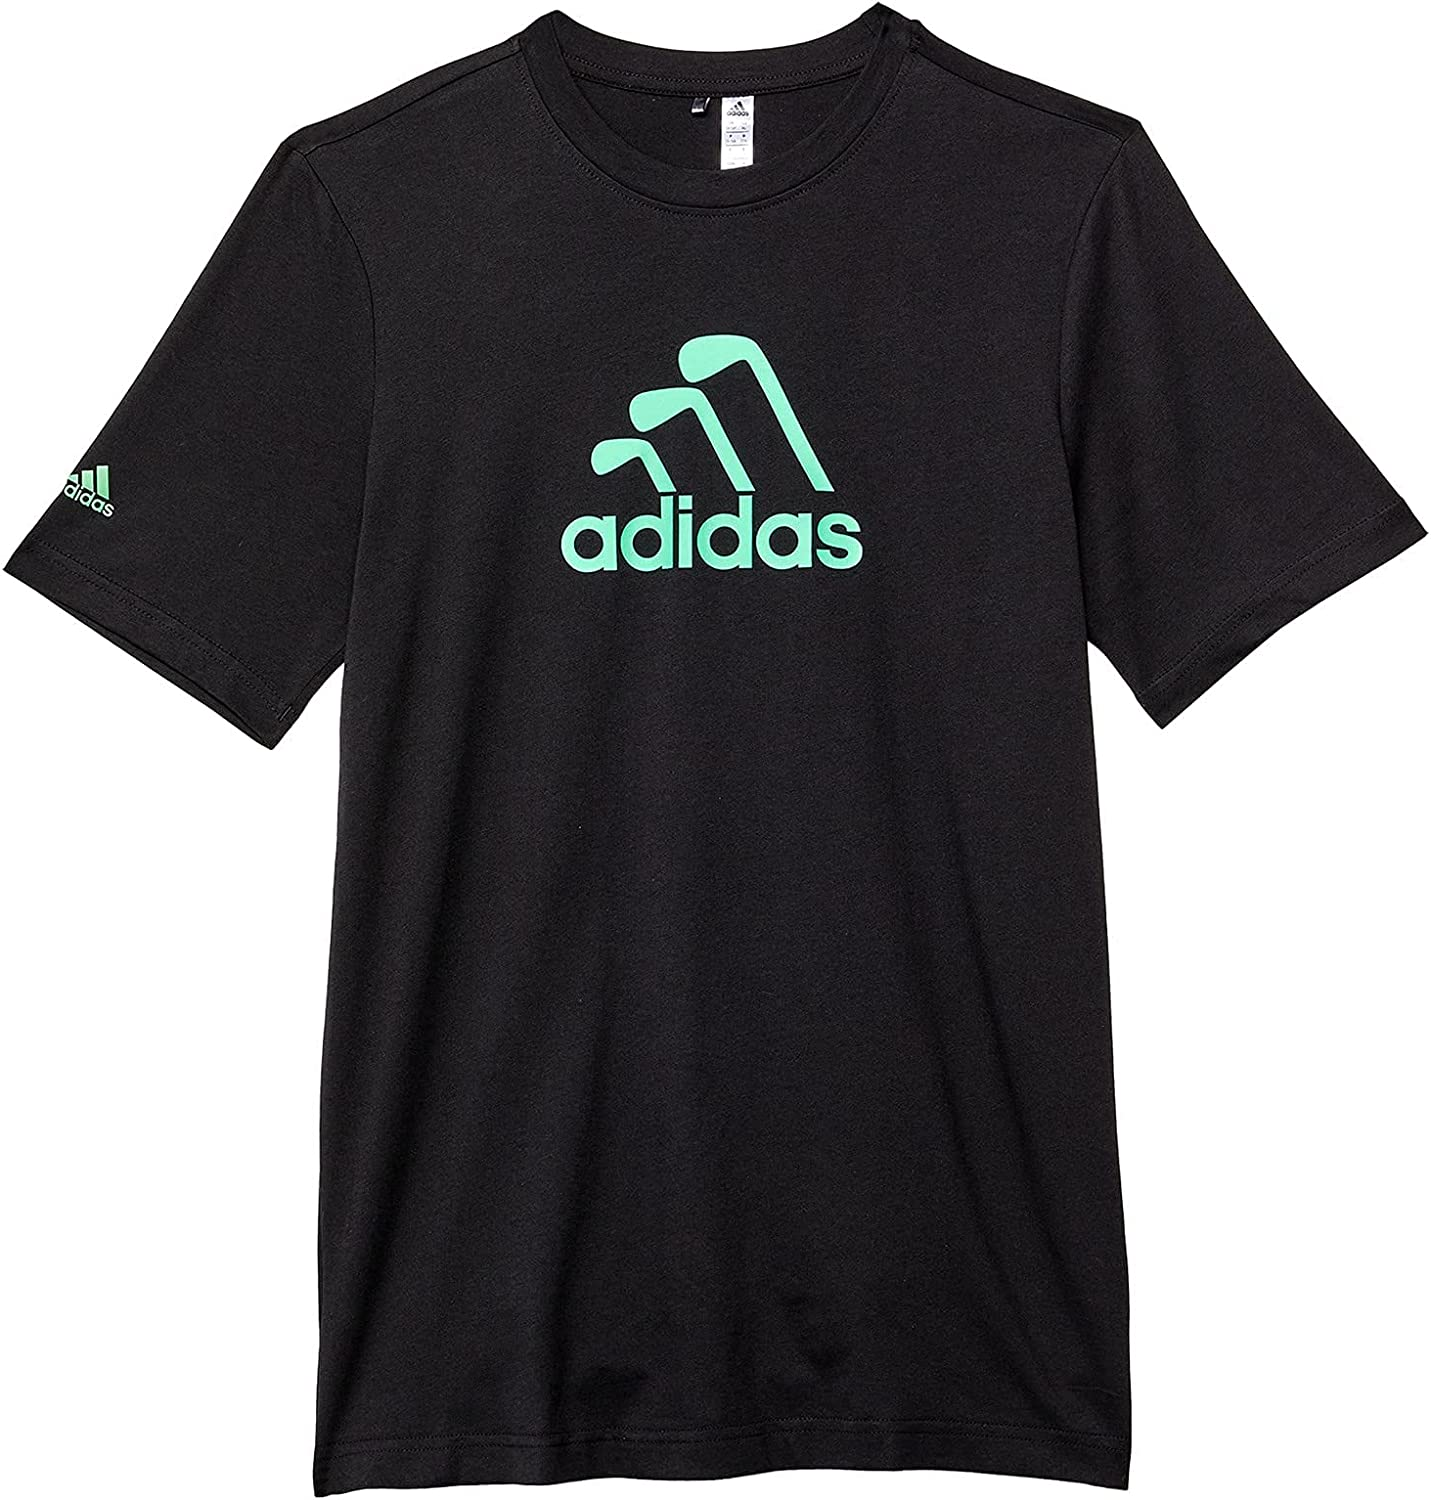 Complete Free Shipping adidas Boys' Youth Golf T-Shirt Graphic Super sale period limited